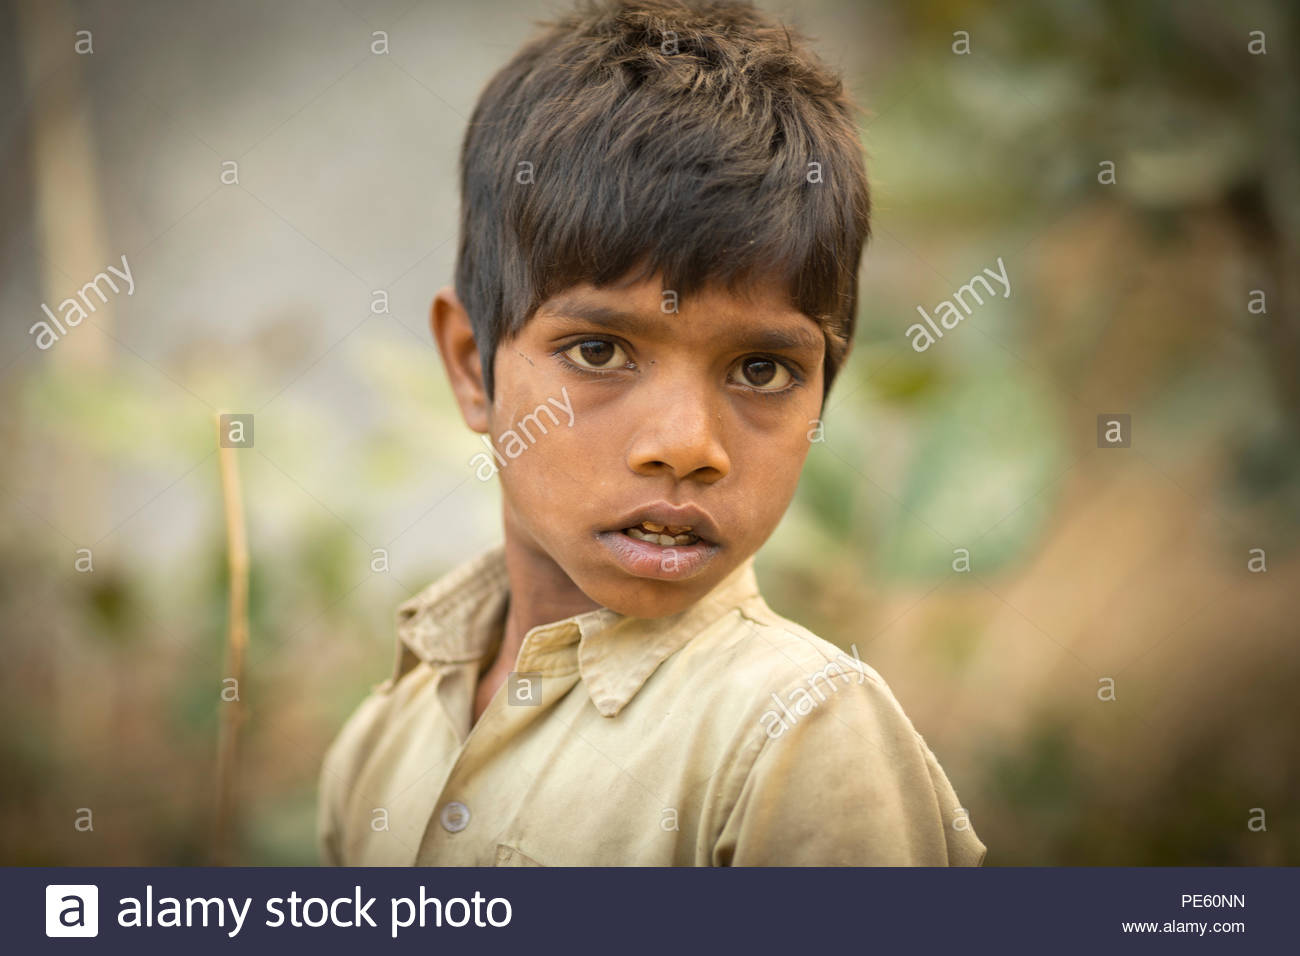 SARUPGANJ, RAJASTHAN, INDIA - JAN 09, 2017 ; An unidentified Indian boy in Village happy to poses for camera, Sarupganj, Rajasthan-India on Jan 09, 20 - Stock Image